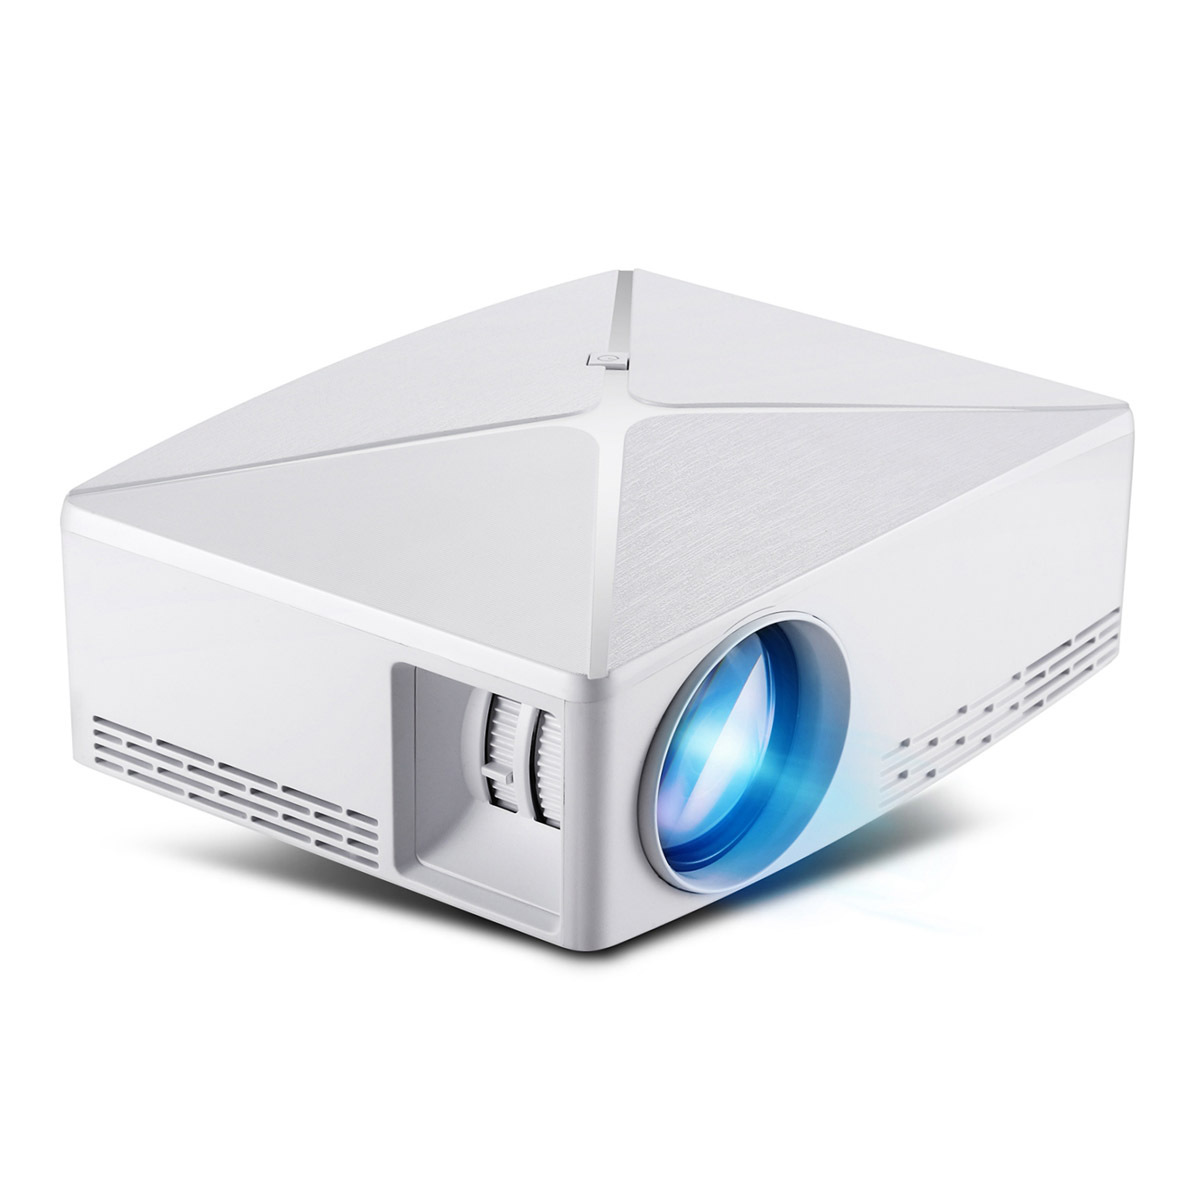 C80 Mini Projector 720P HD Multimedia System Portable Beamer for Home and Office with 2200 Lumens Brightness white_EU Plug